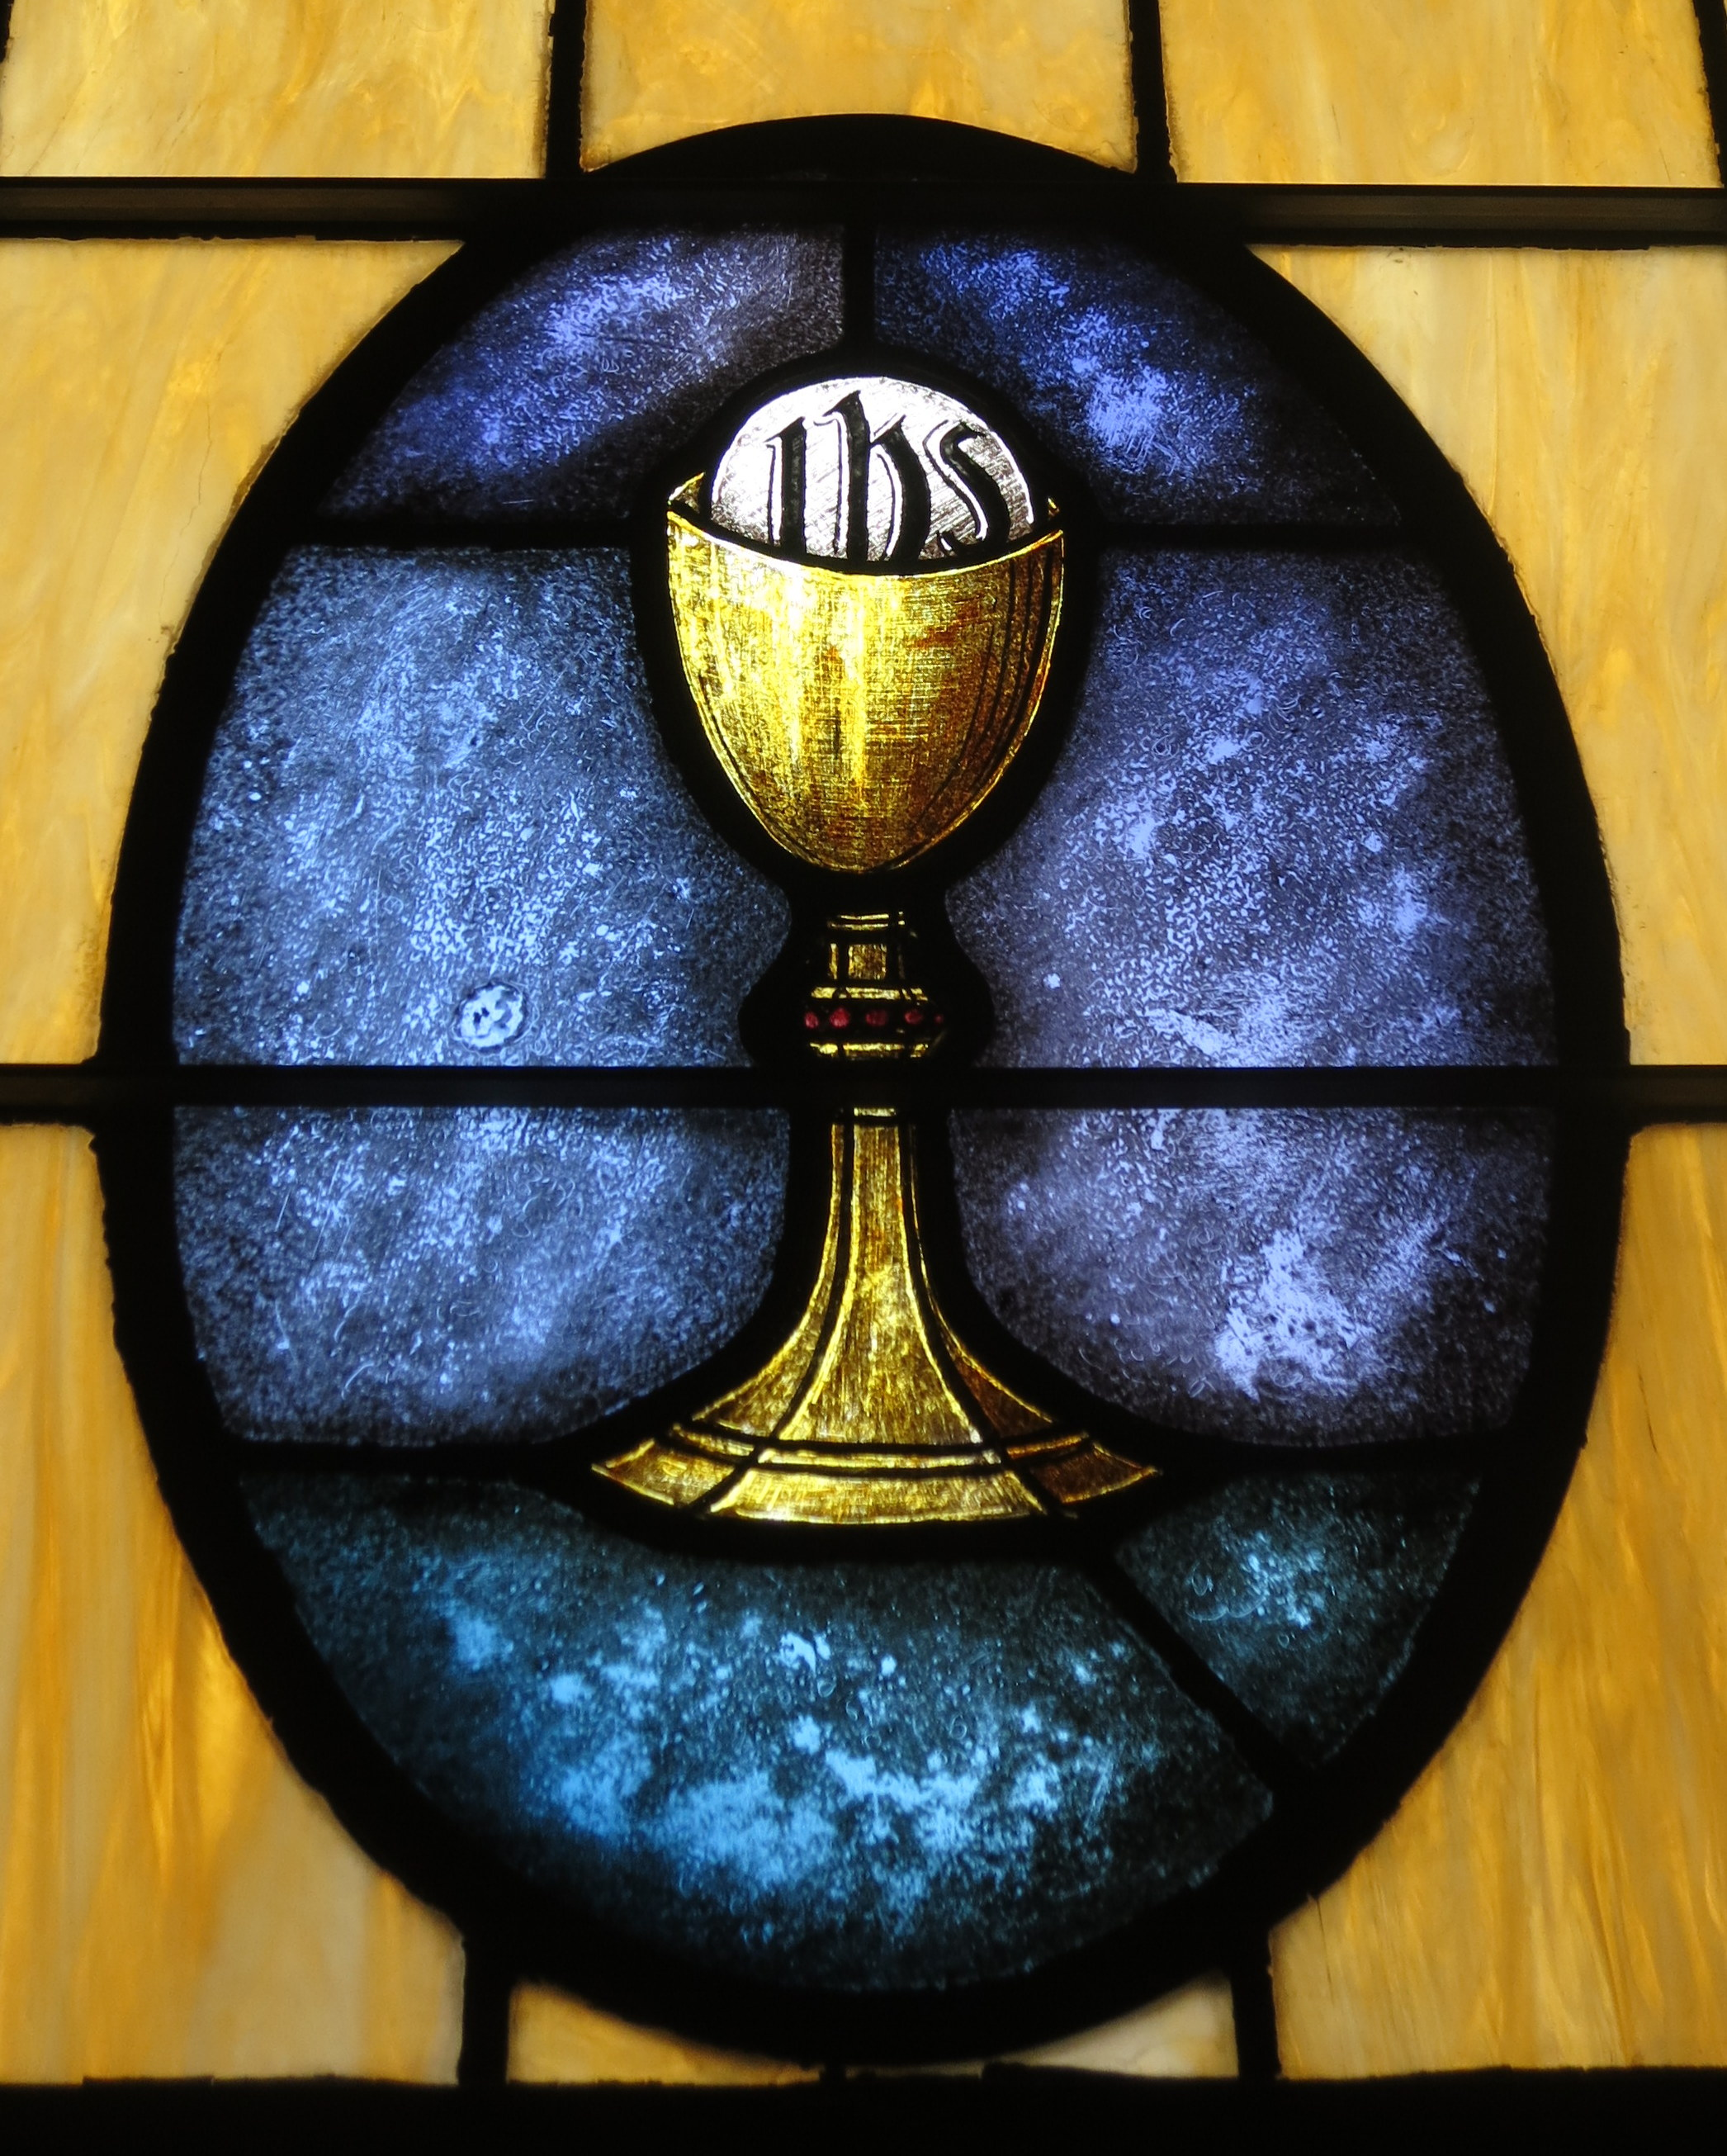 On the Real Presence of Jesus in the Eucharist